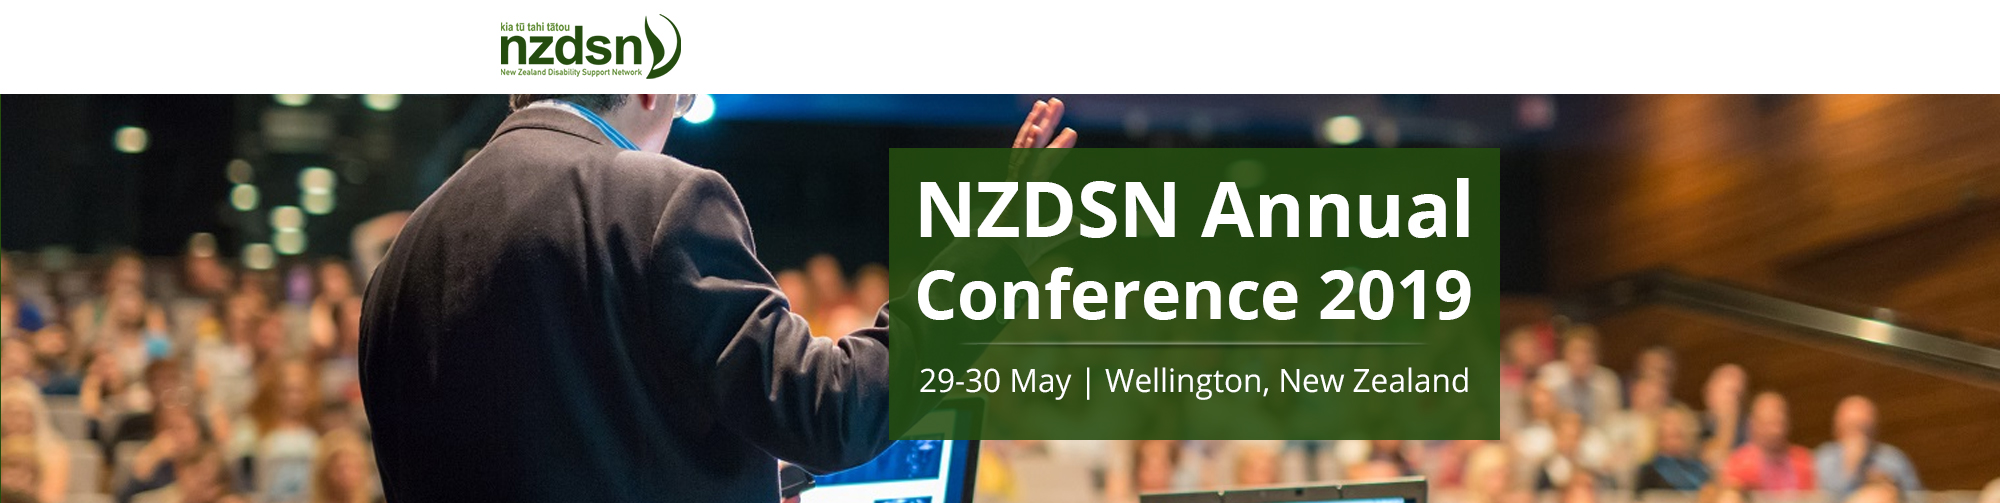 NZDSN Annual Conference 2019